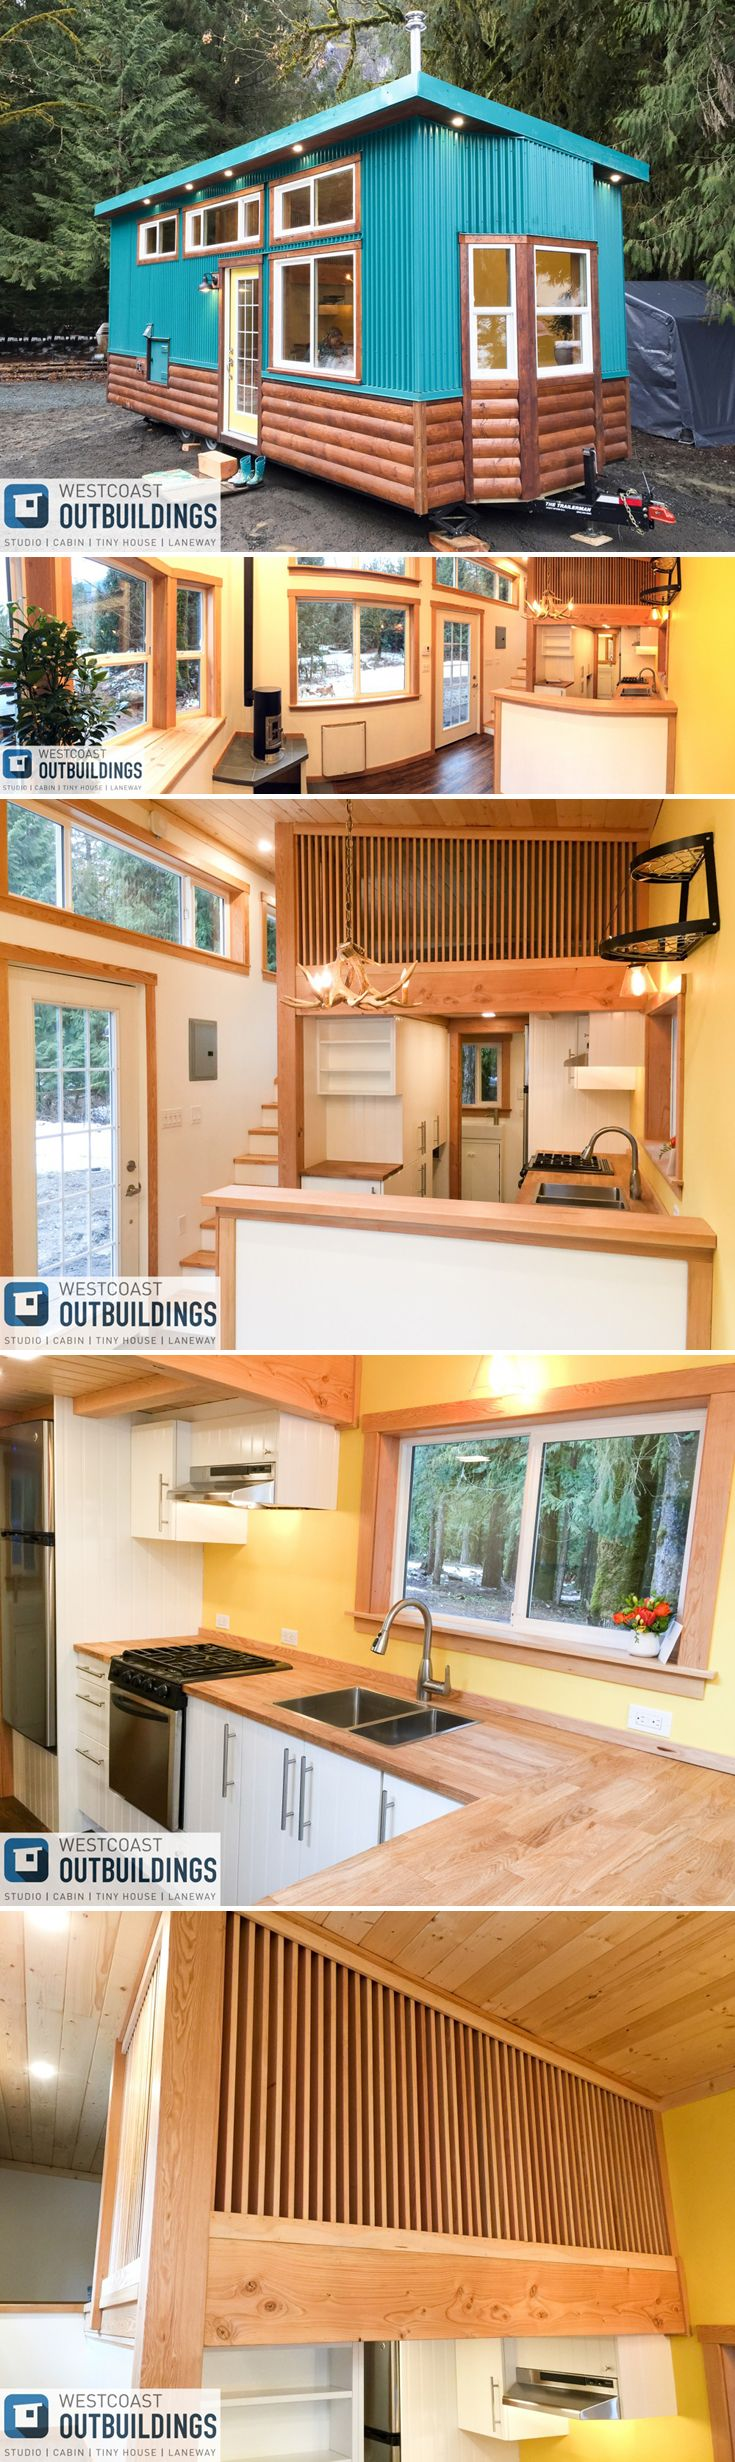 best tiny homes i like images on pinterest tiny house cabin